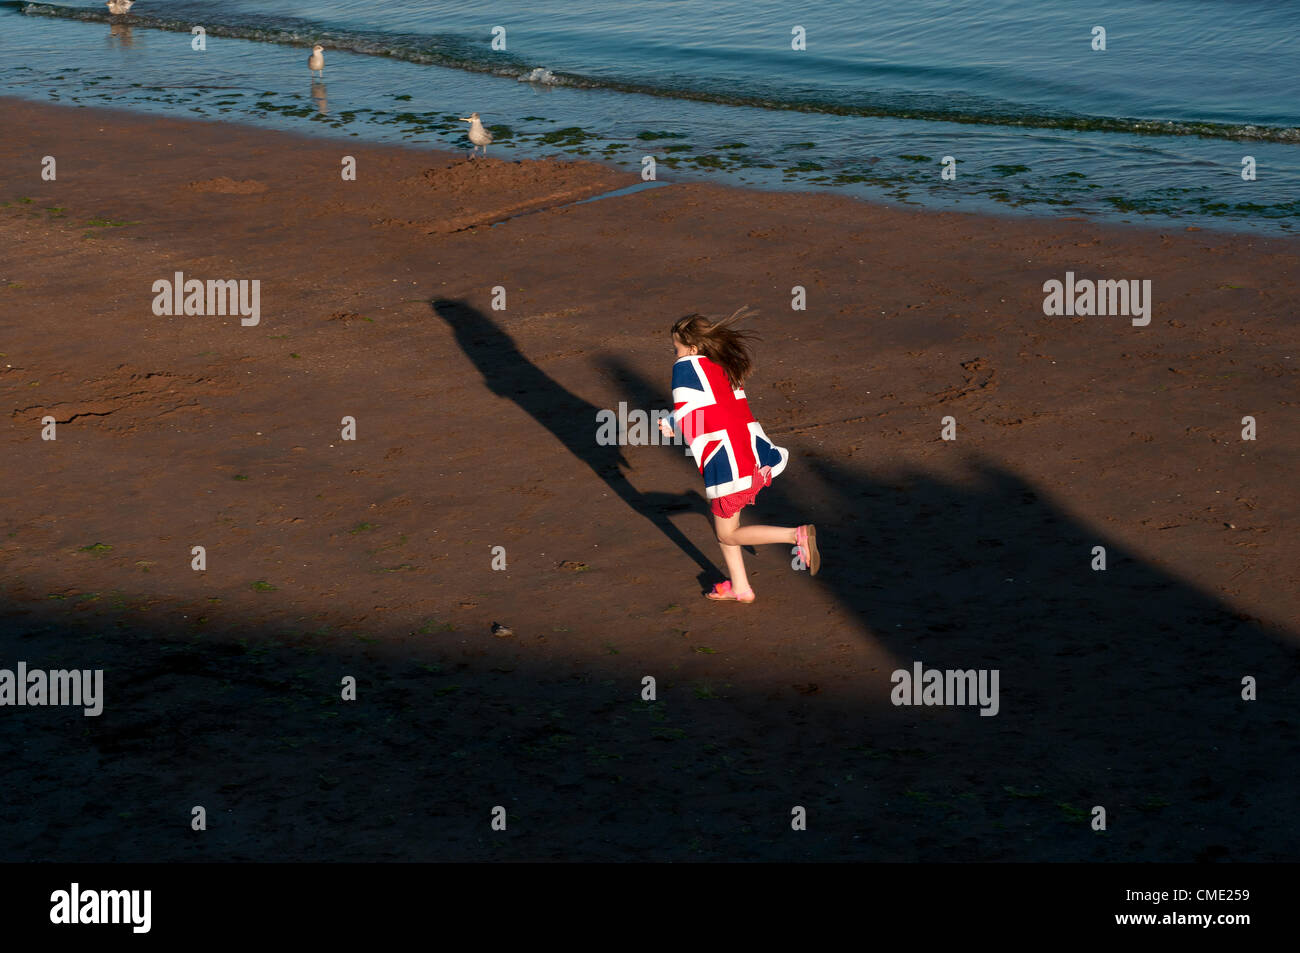 .brexit2012,leap, national, ocean, outdoors, patriot, patriotic, patriotism, people, person, olympics, action, active, - Stock Image